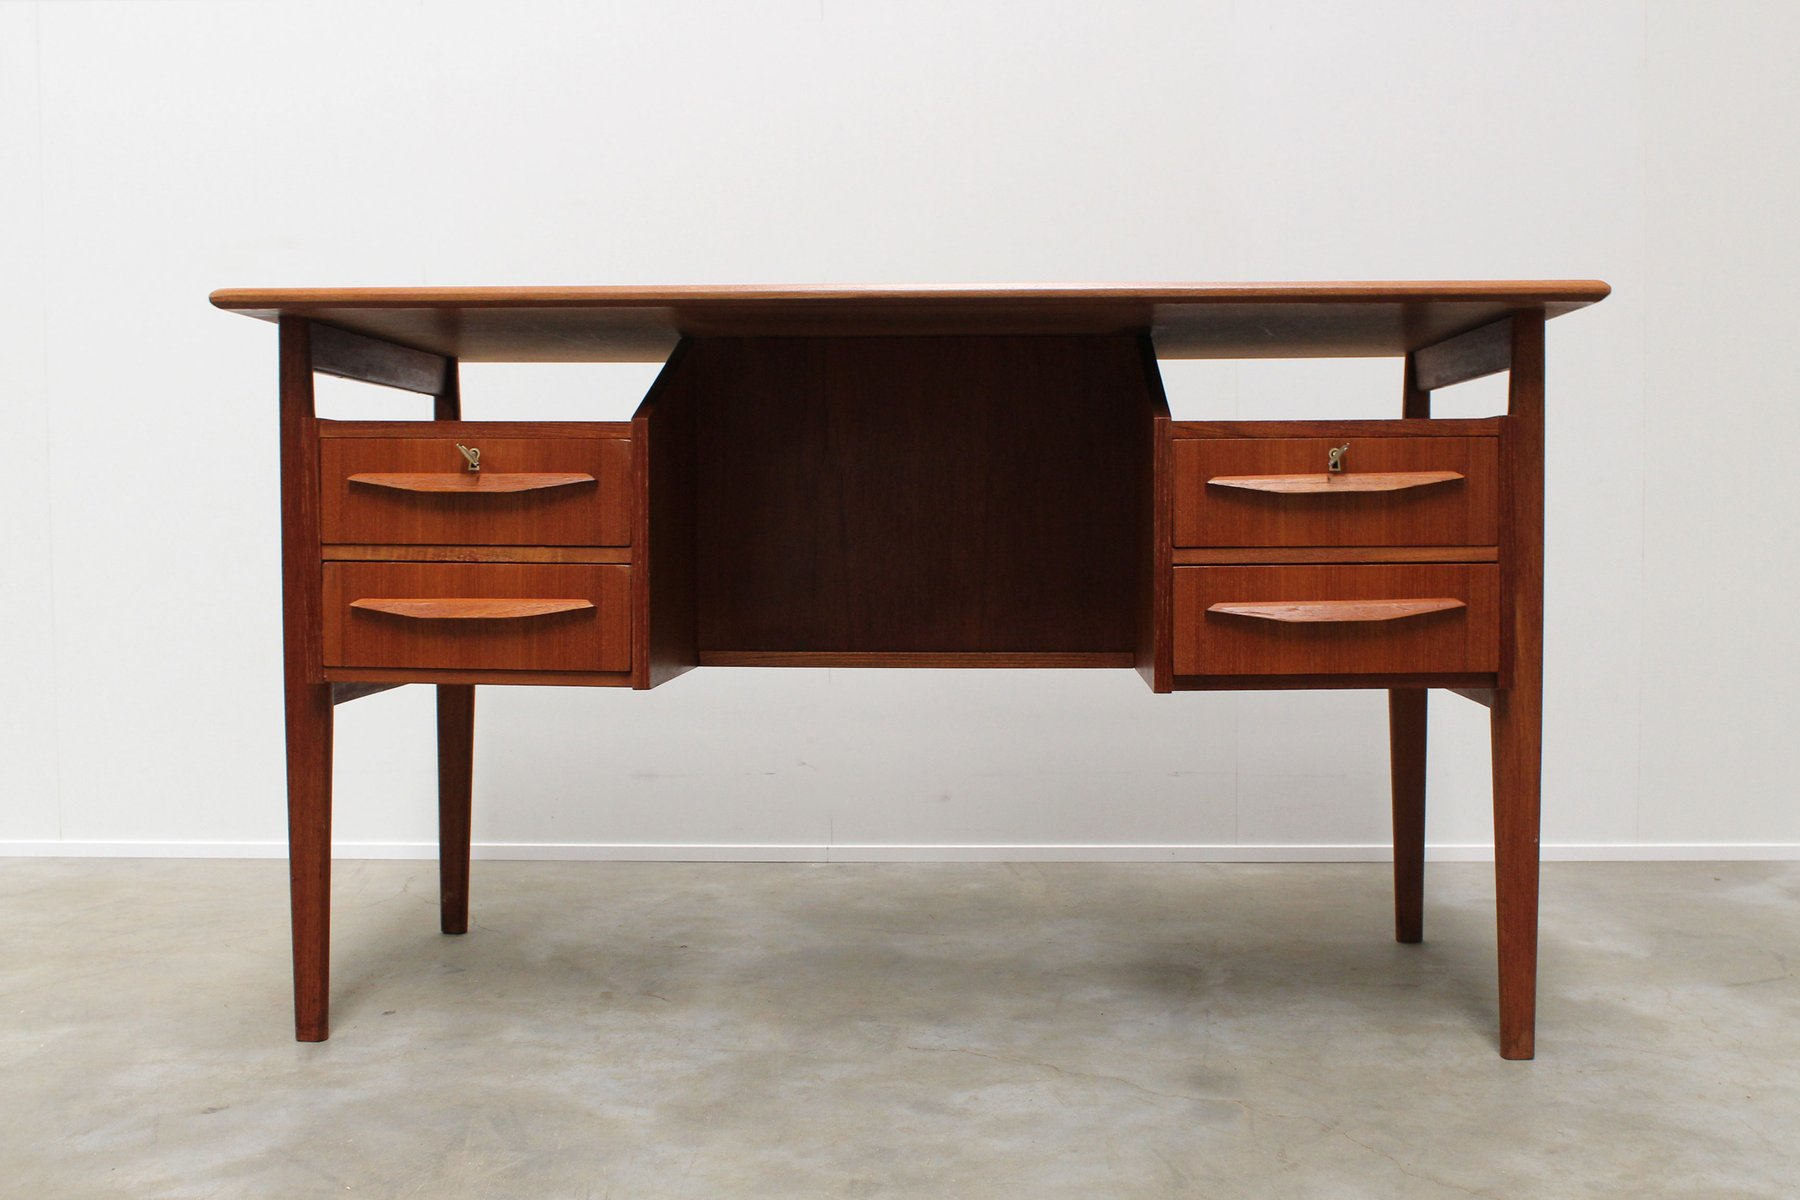 design edmonton img products desk mobler domino teak danish consign